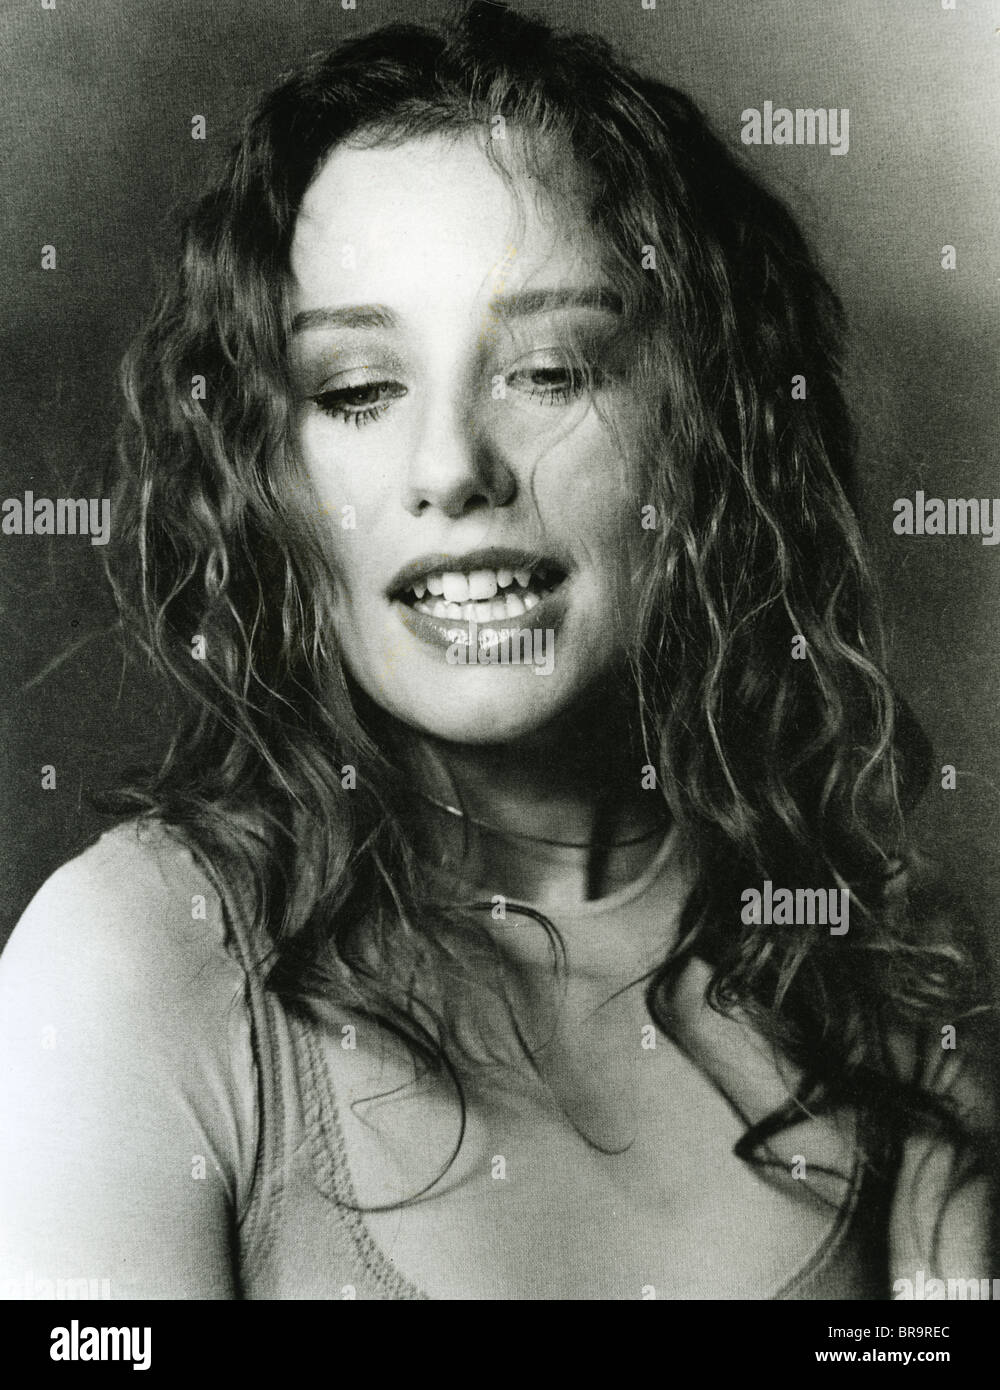 TORI AMOS  - Promotional photo of  US singer about 1992 - Stock Image